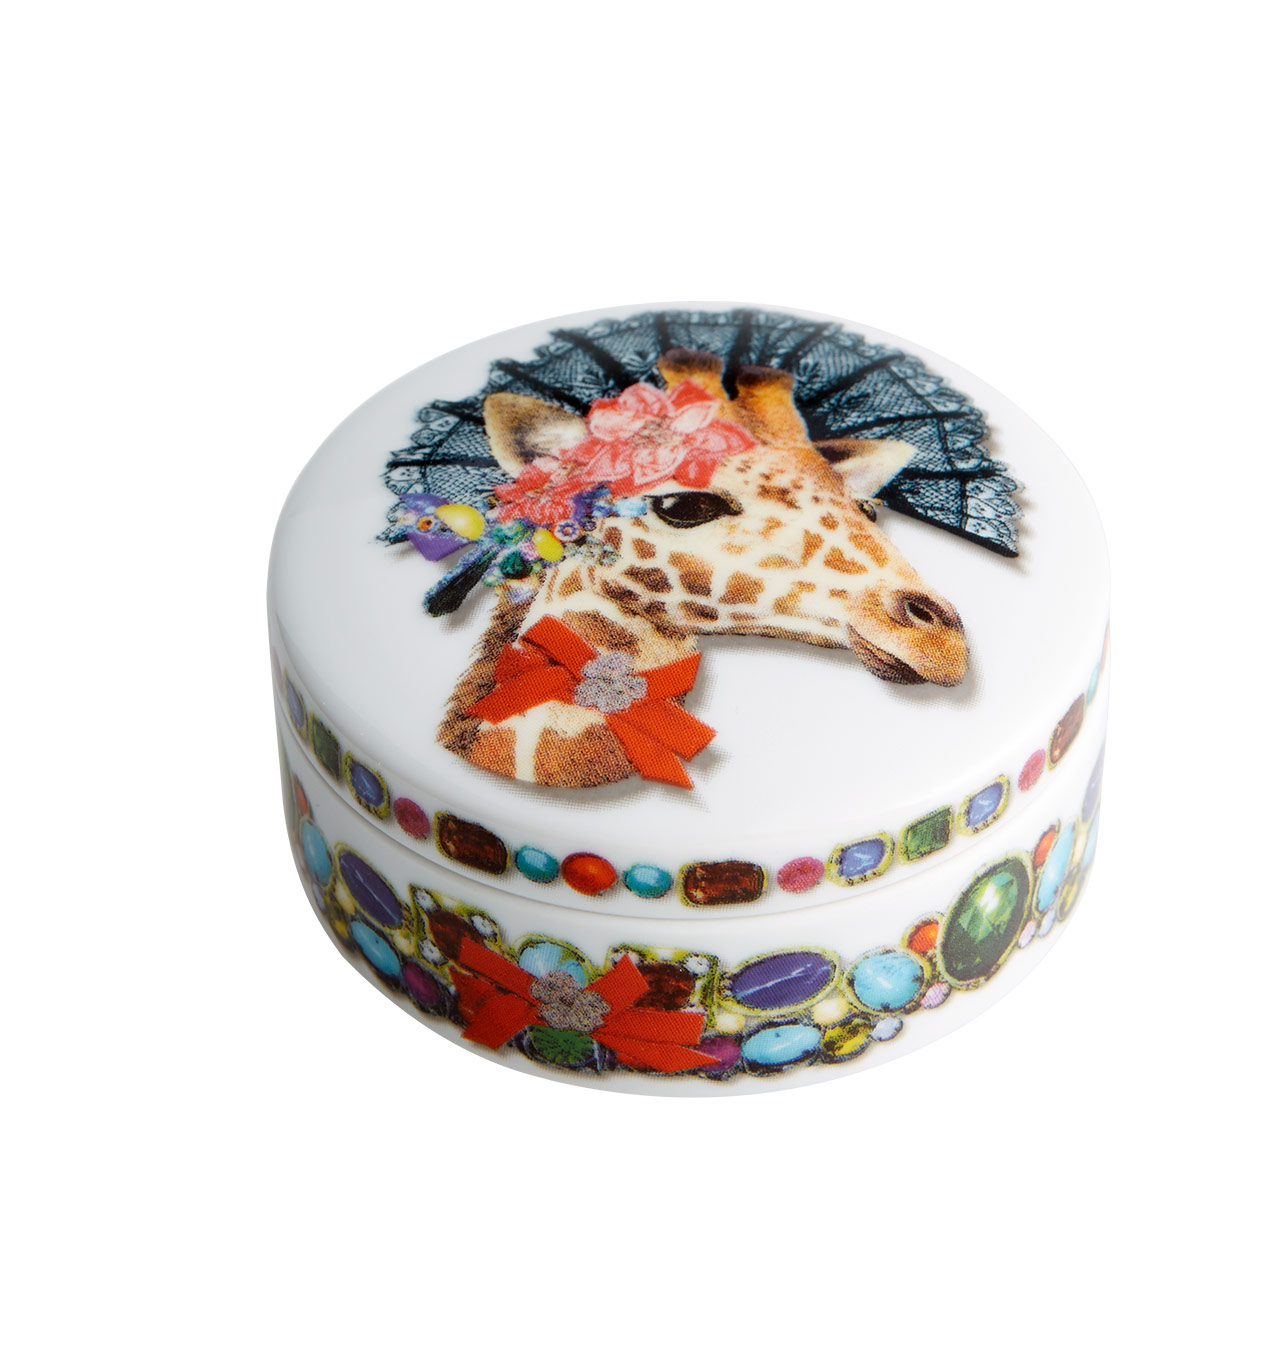 Vista Alegre by Christian Lacroix - €28,00